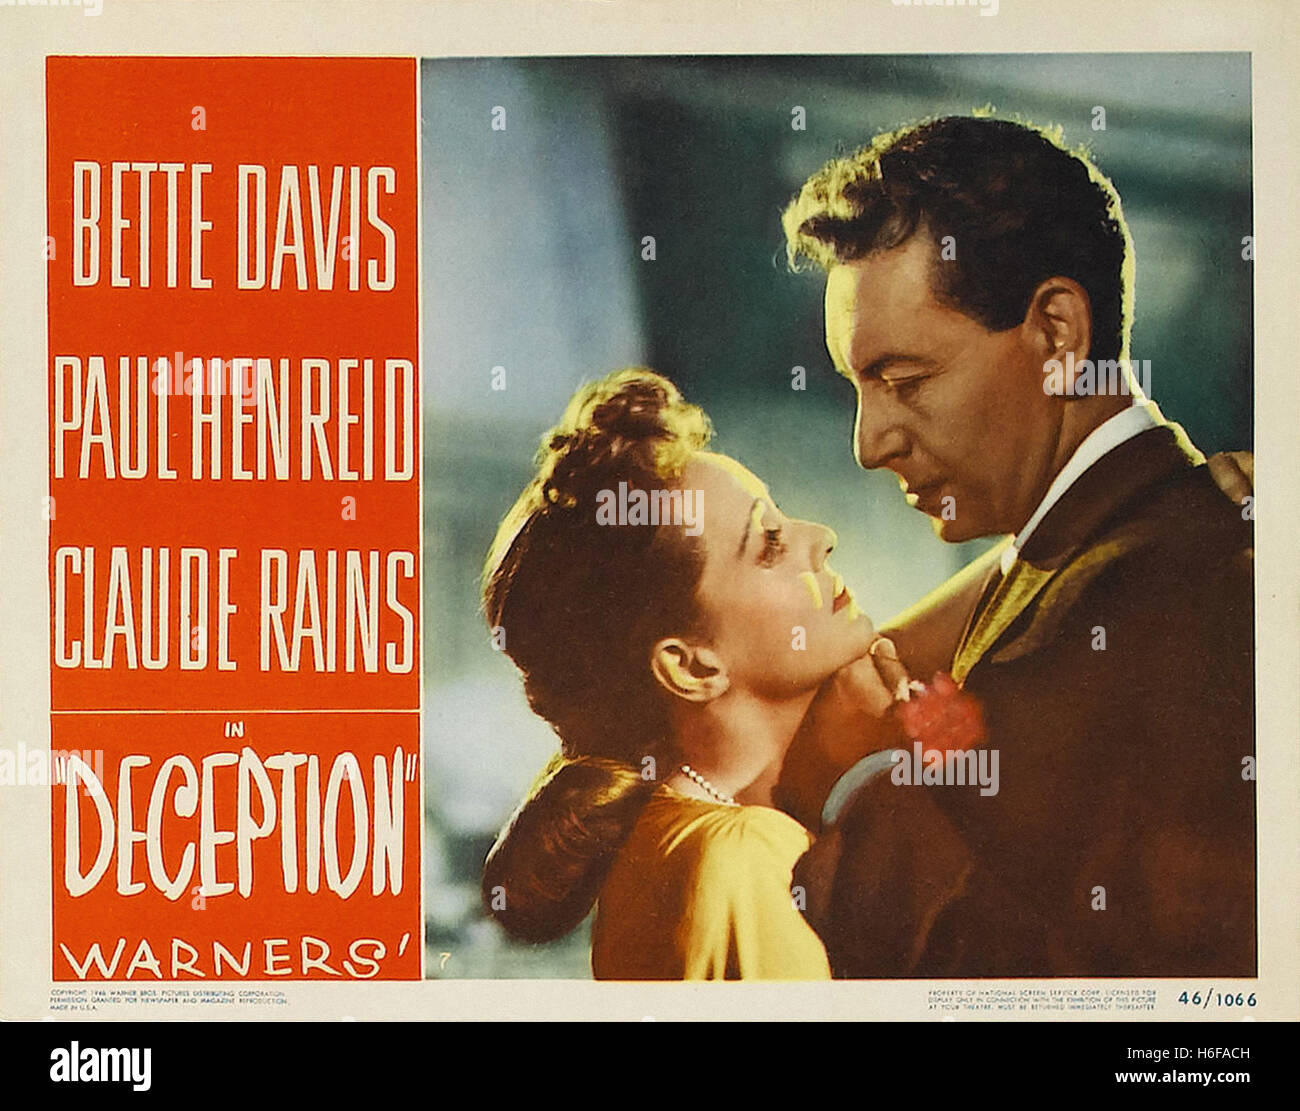 Deception (1946) - Movie Poster - - Stock Image